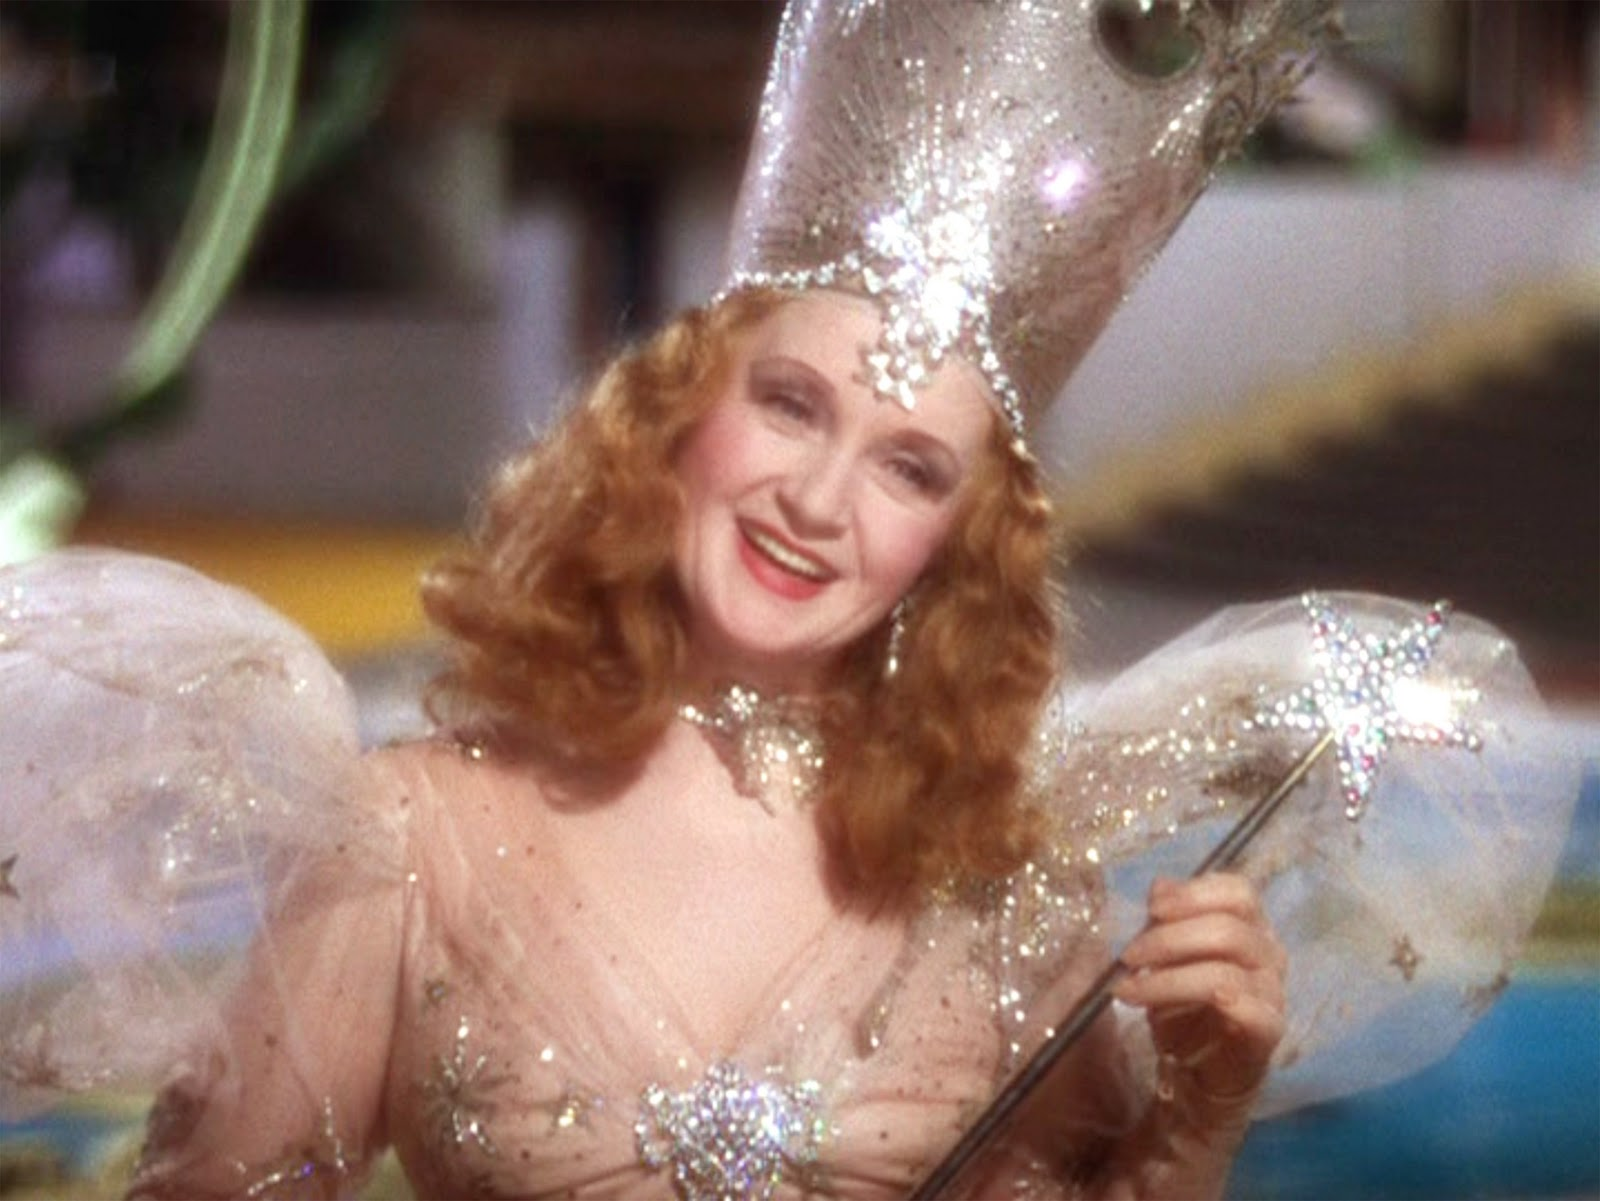 Glinda the Good Witch - The Wizard of Oz